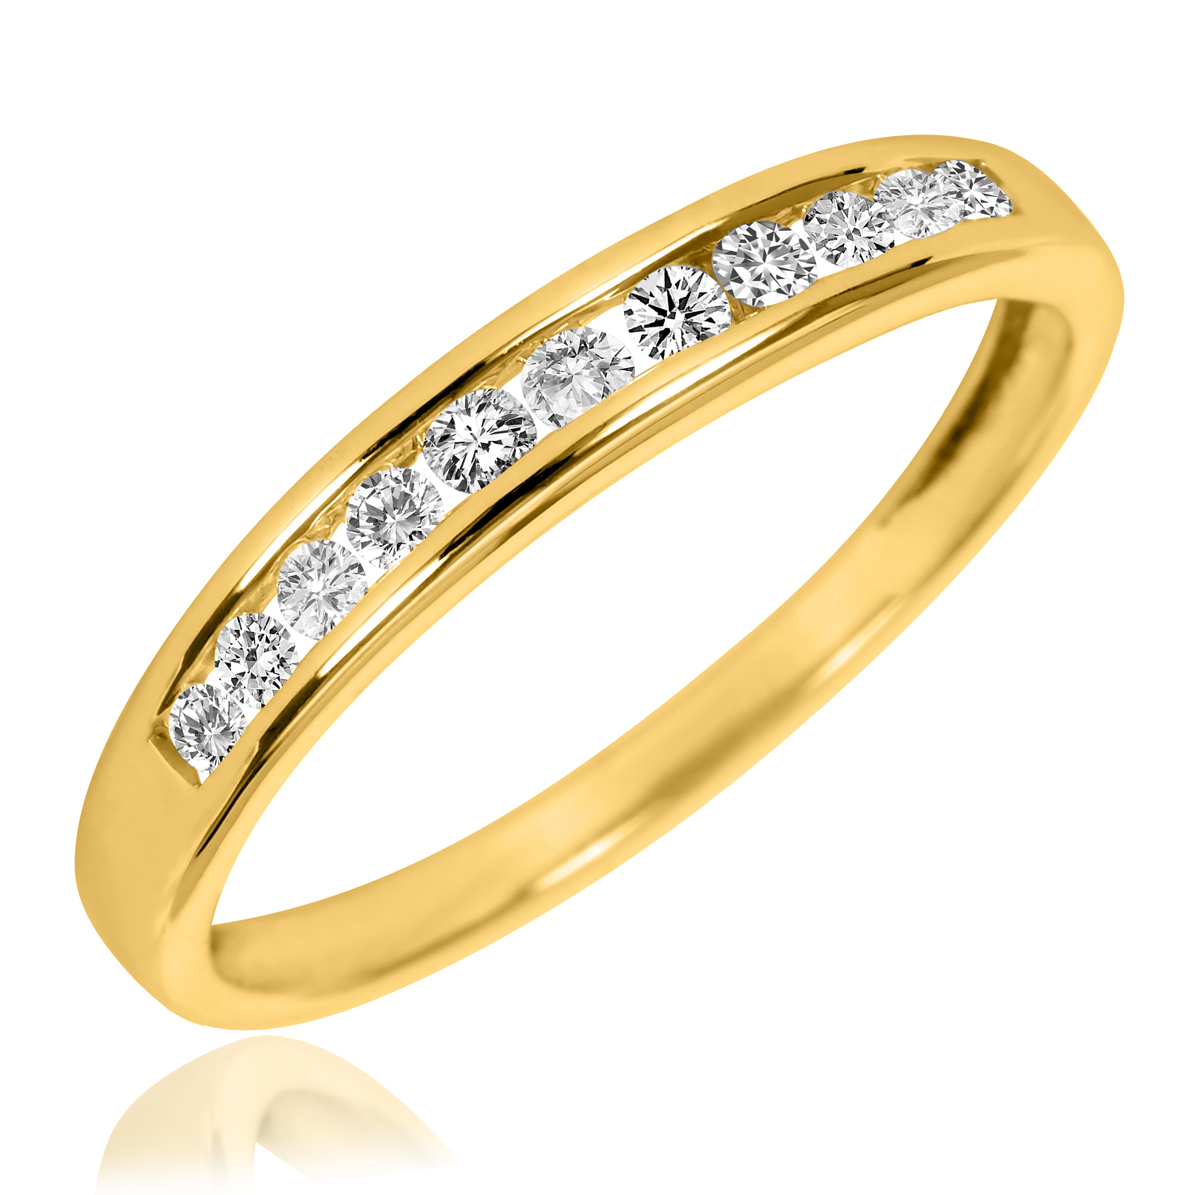 7 8 Carat TW Diamond His And Hers Wedding Rings 10K Yellow Gold